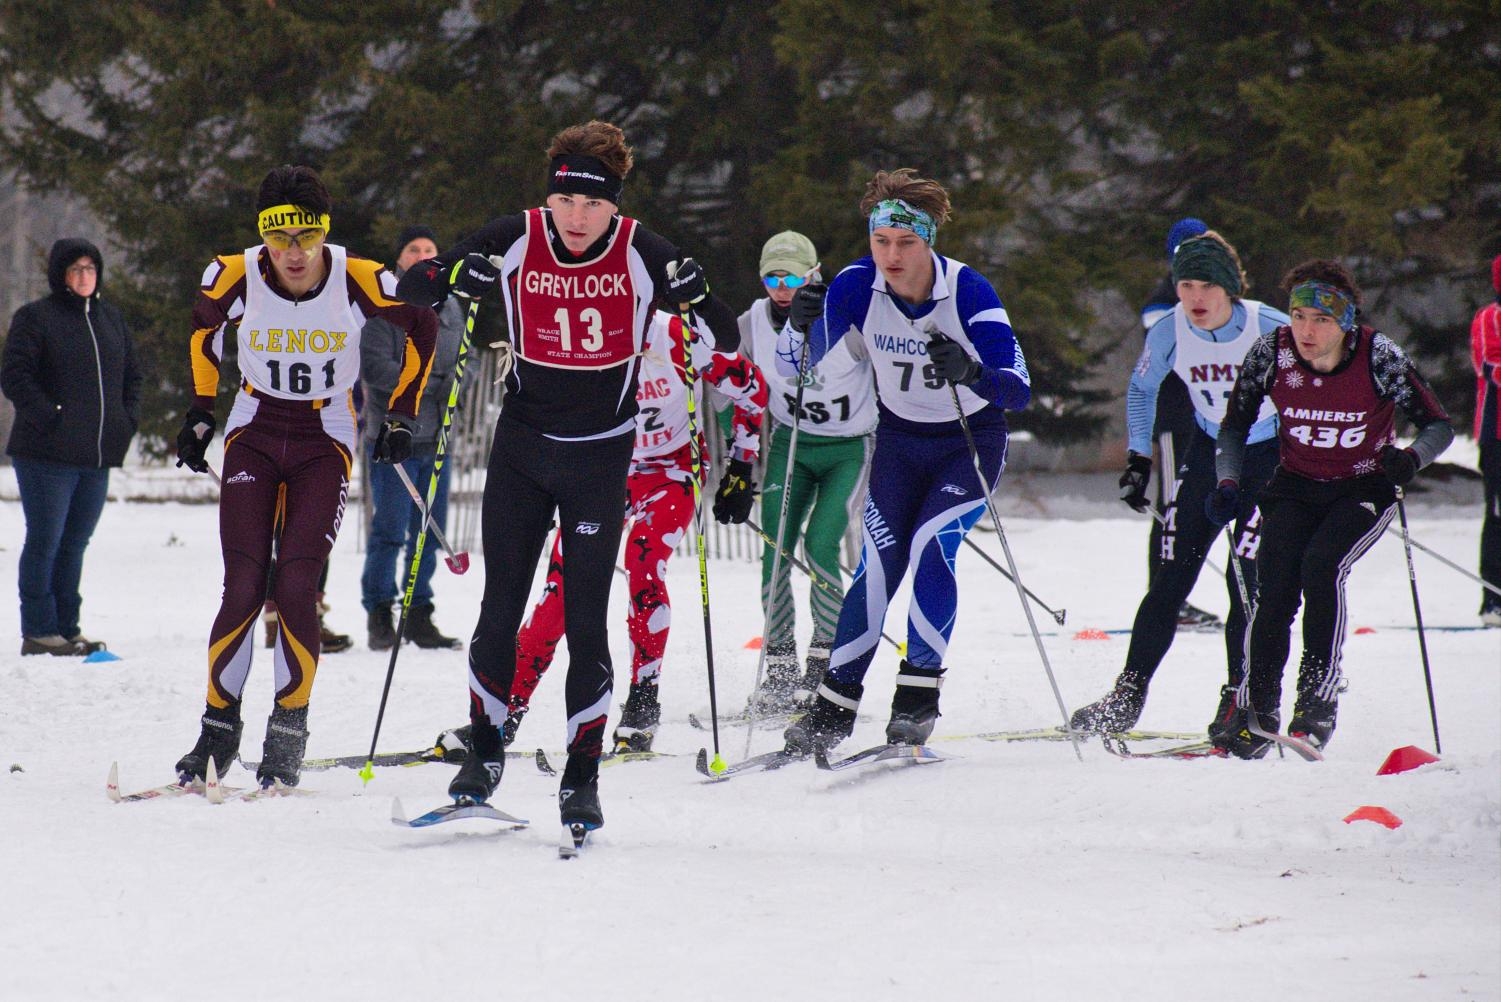 Col McDermott leads the first wave at an early season league race.